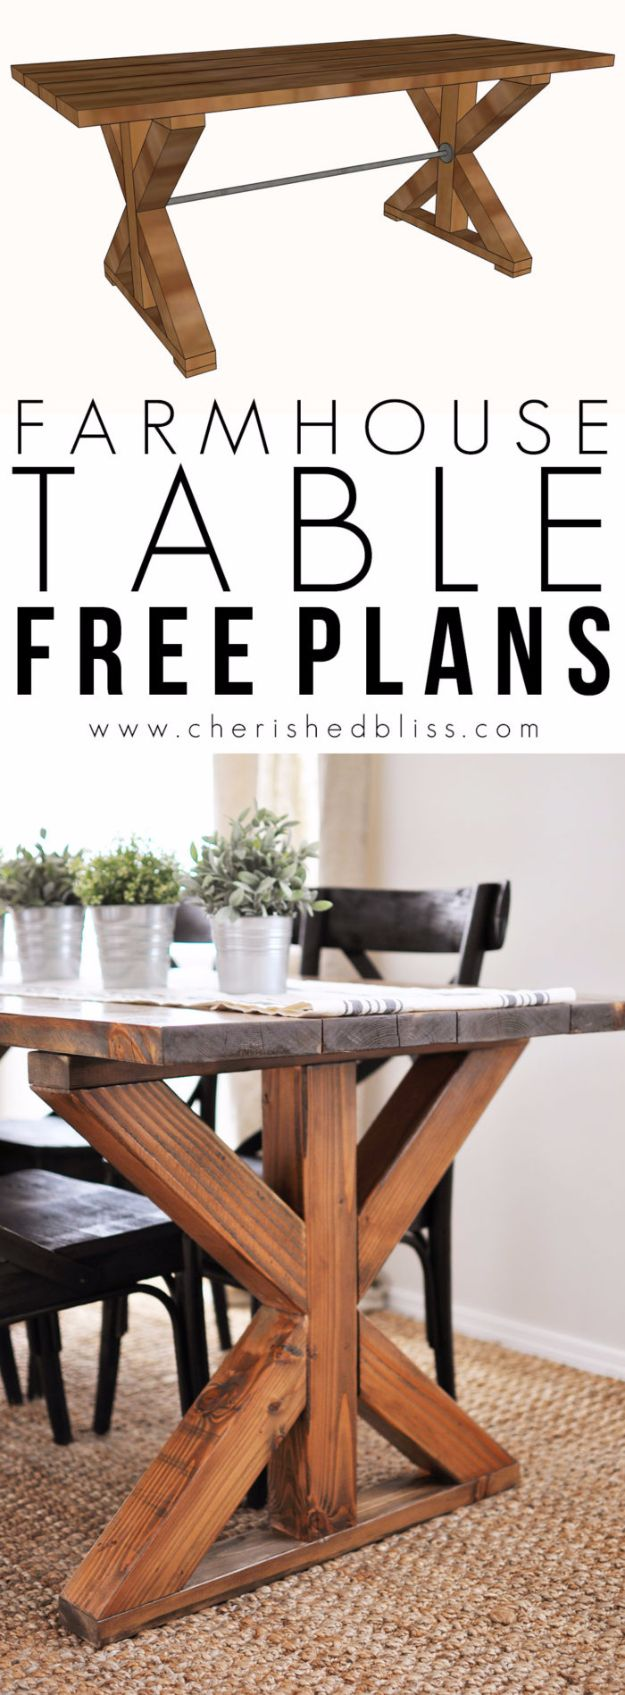 Diy dining room table projects x brace farmhouse table creative diy dining room table projects x brace farmhouse table creative do it yourself tables solutioingenieria Choice Image